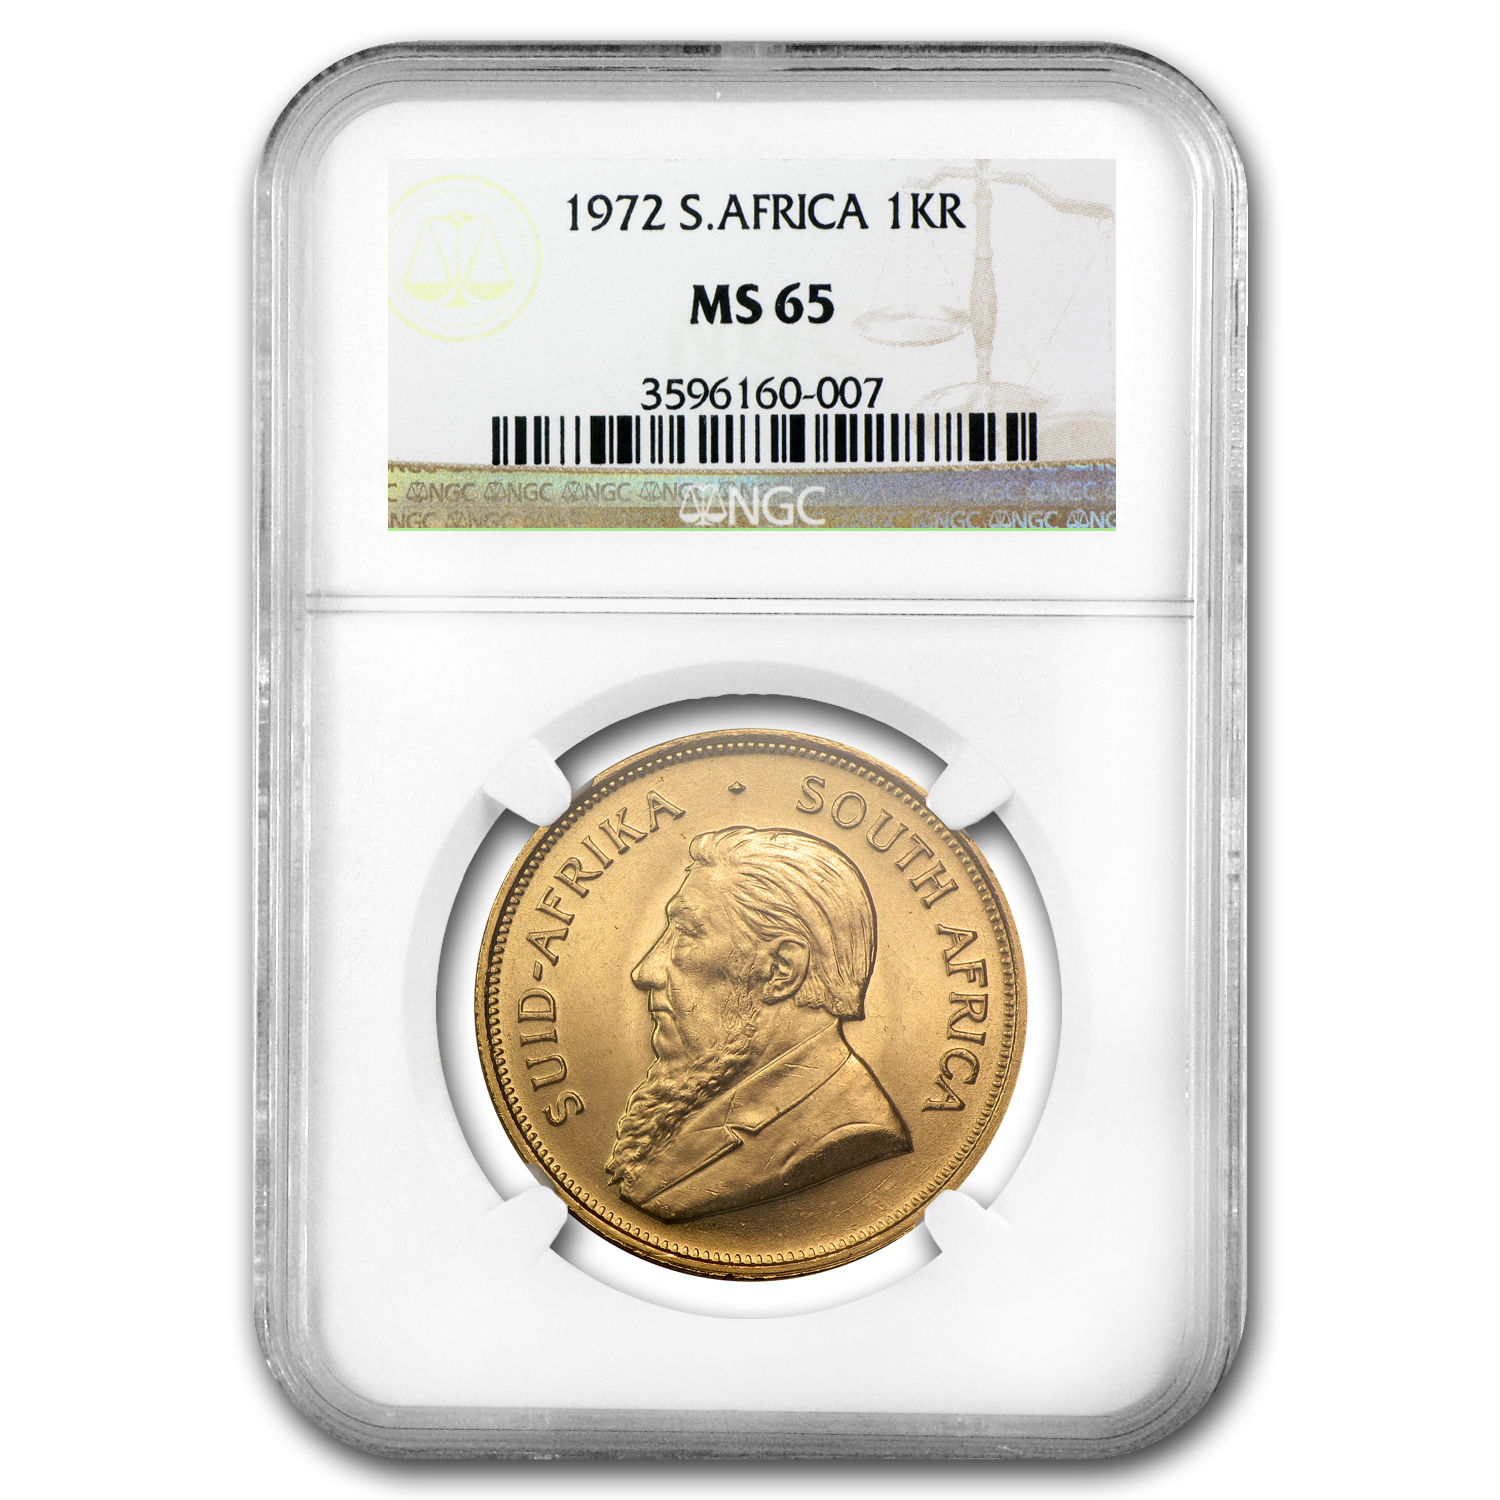 1972 1 oz Gold South African Krugerrand MS-65 NGC